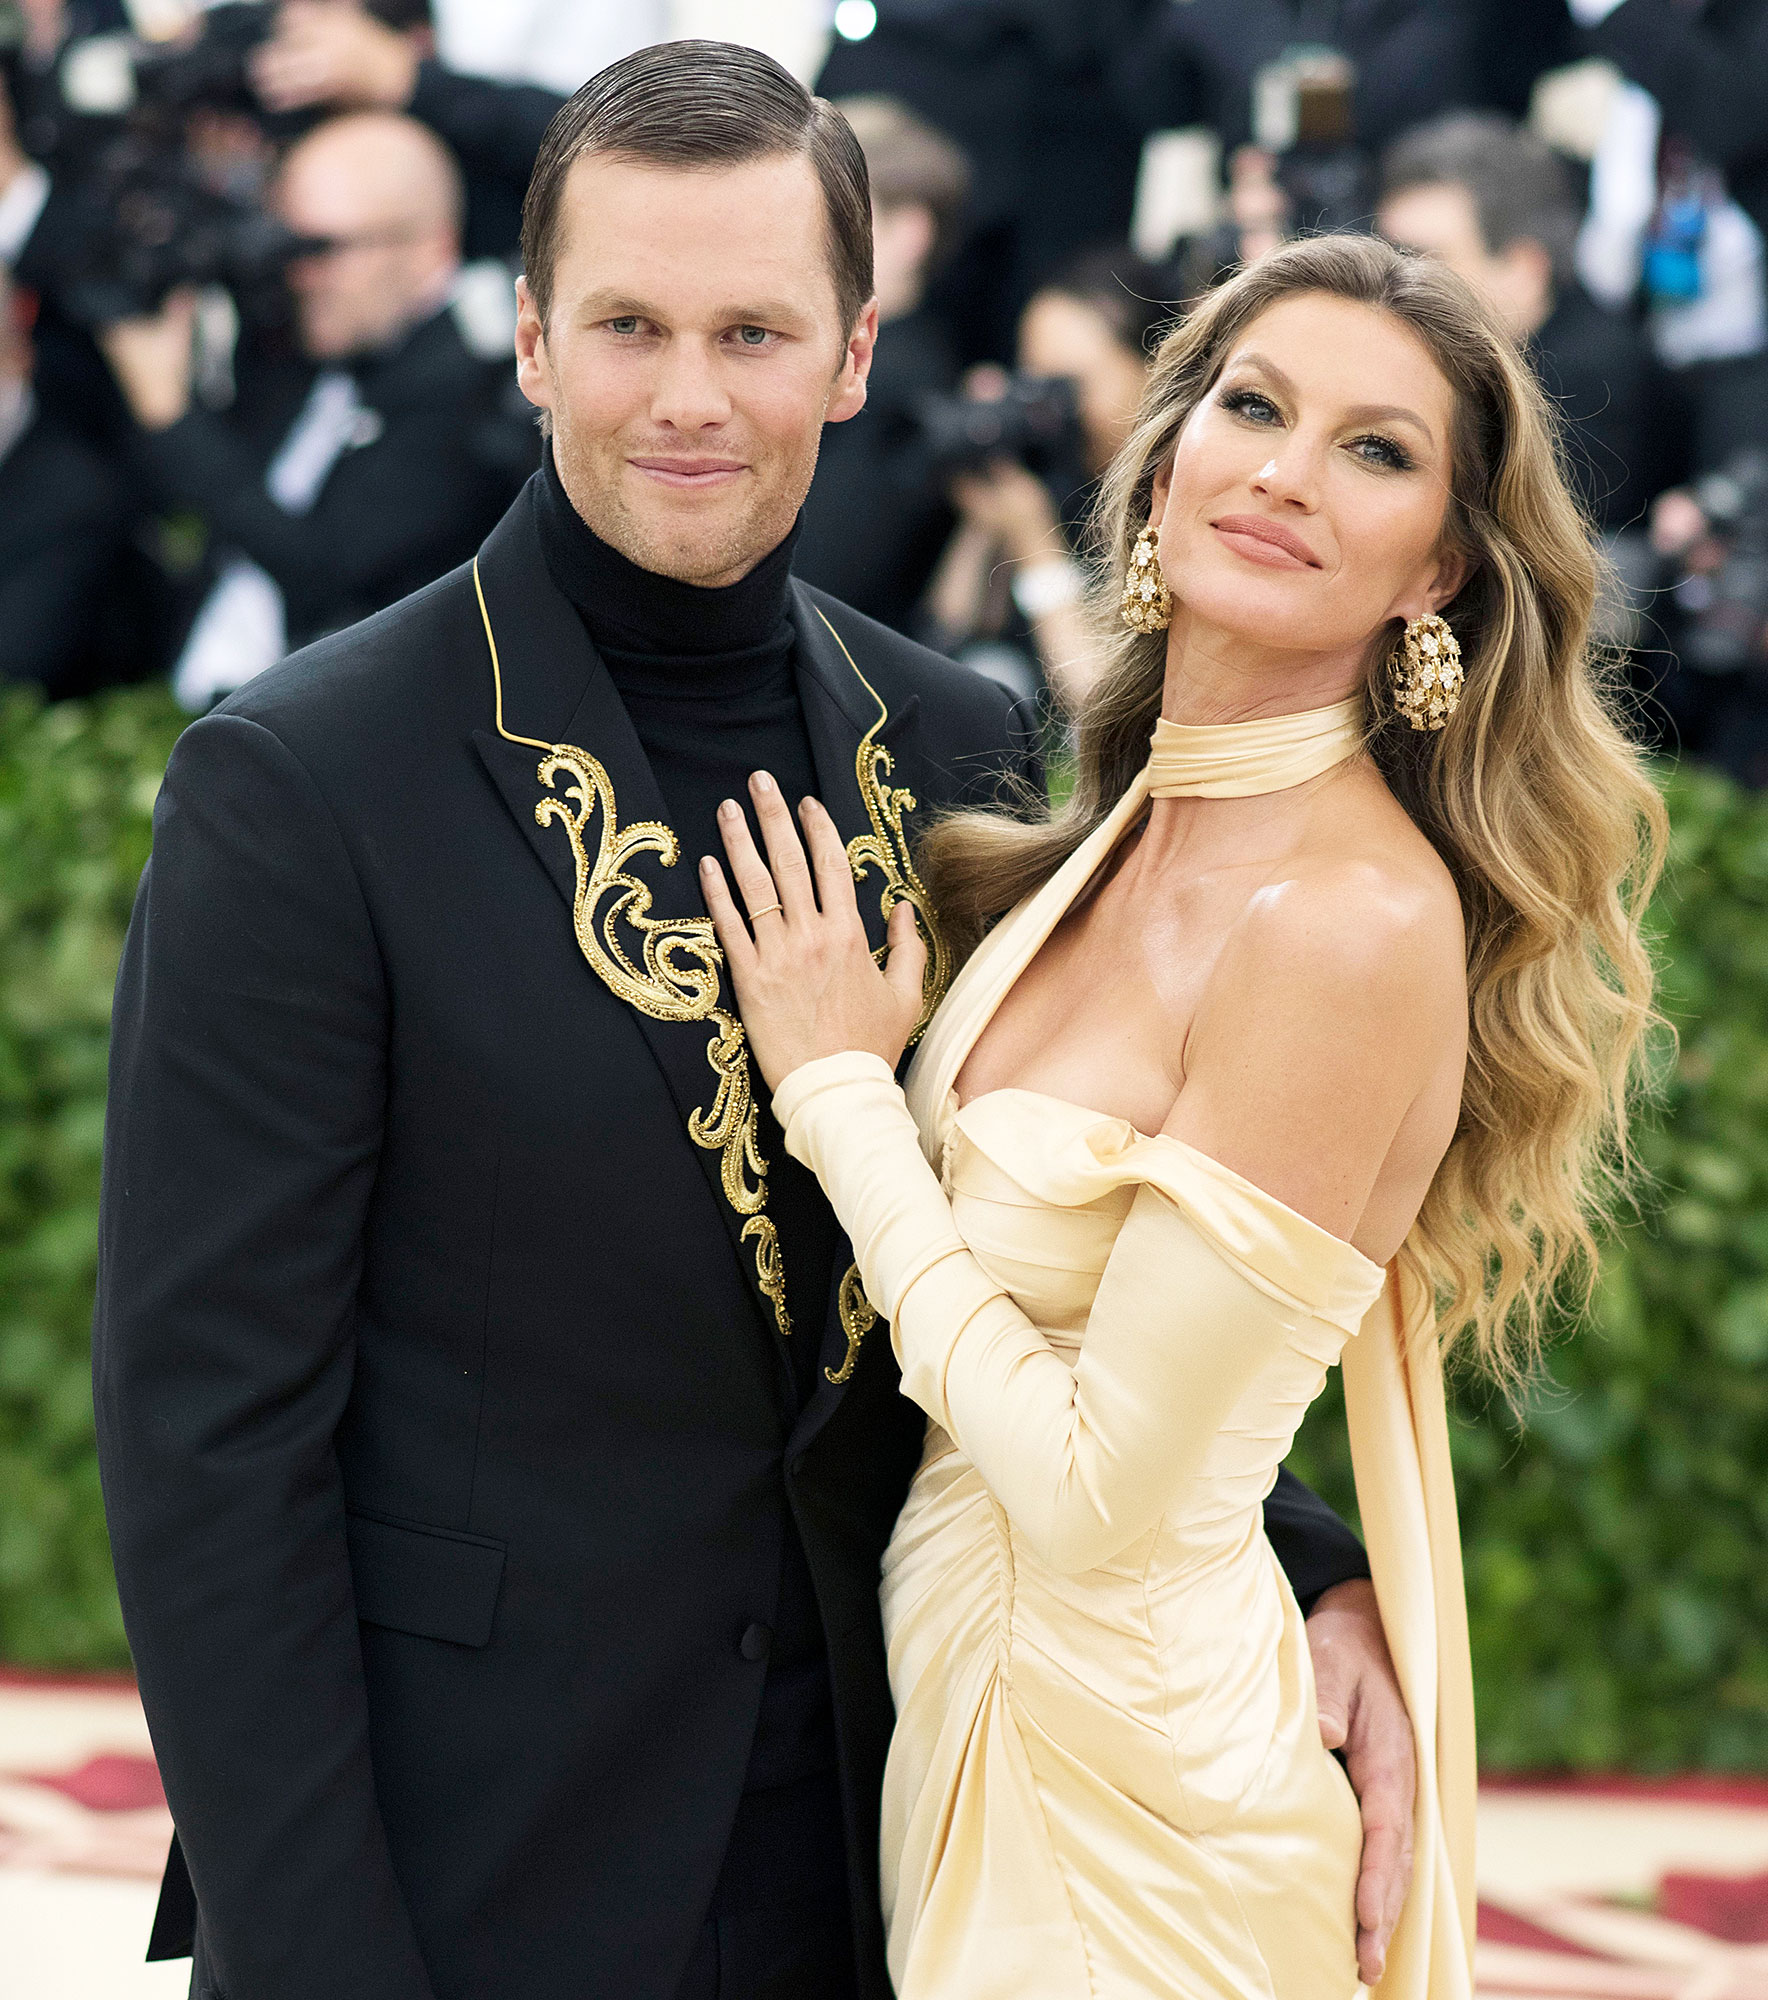 Tom Brady and Gisele Bundchen attend The MET Gala Gisele Bundchen Says She Will Live Wherever Tom Brady Is Happy Playing Amid Rumors Hes Leaving the Patriots